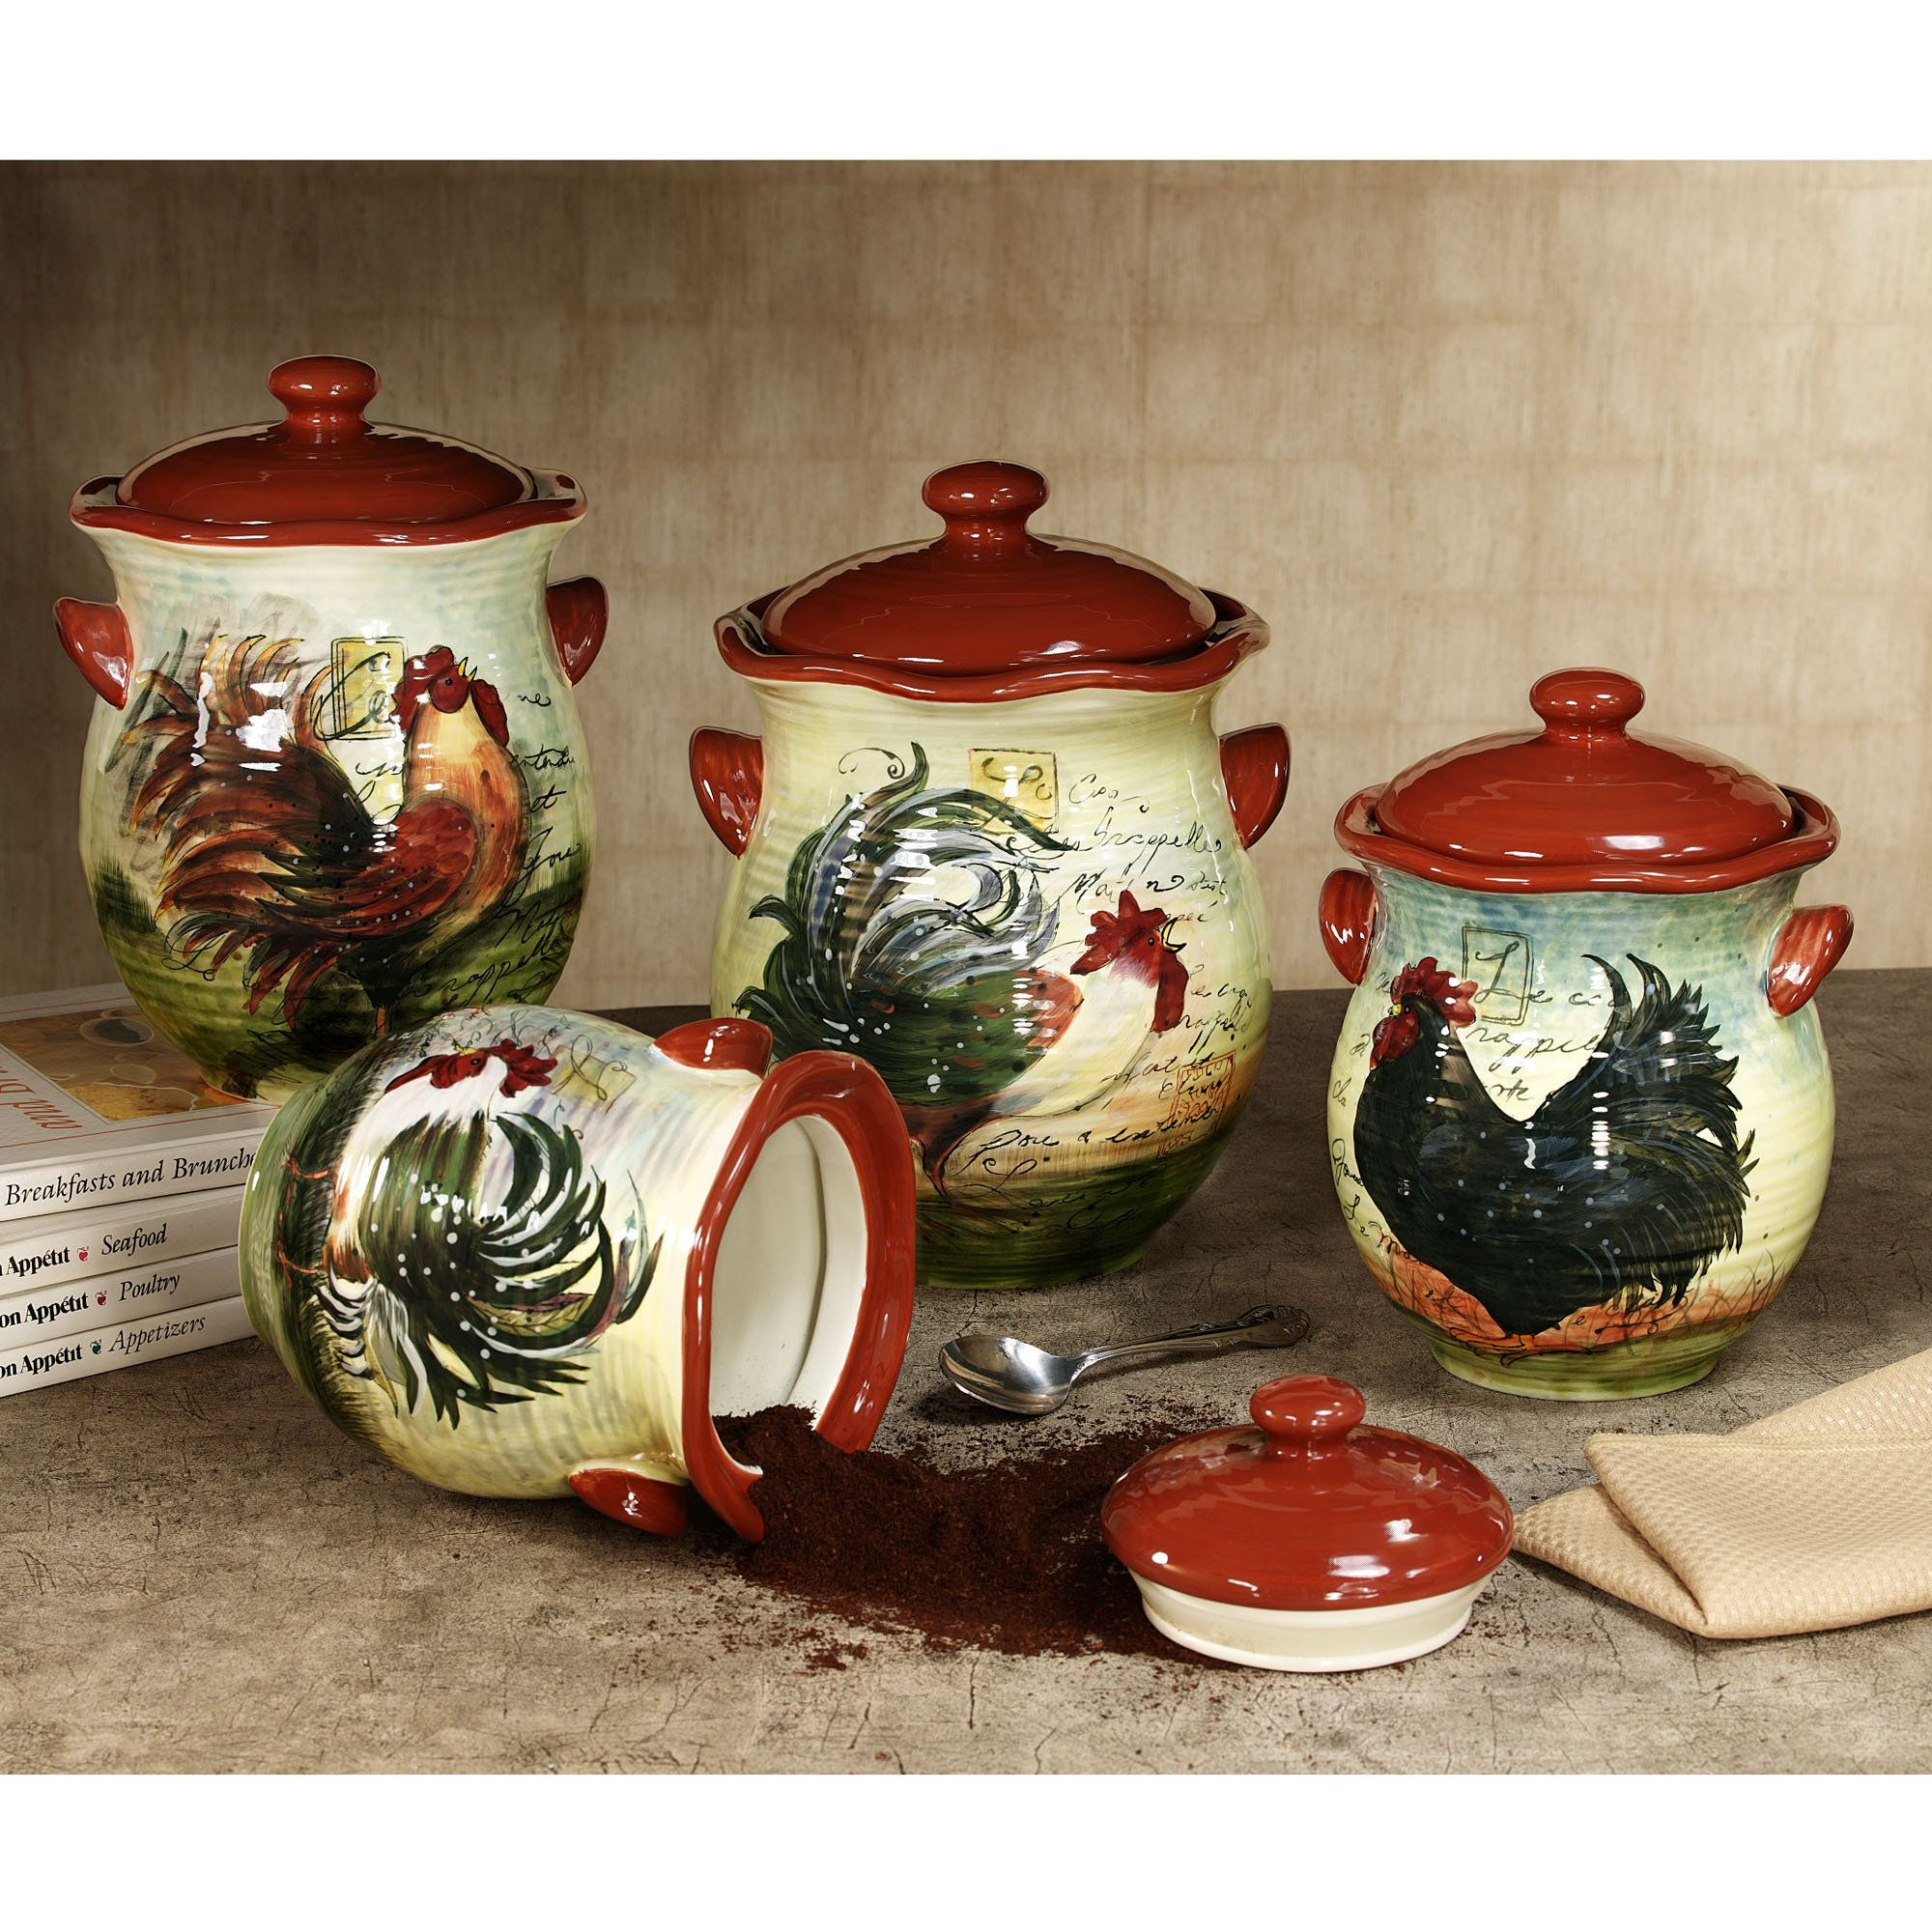 Country canister sets for kitchen - 17 Best Images About Canister Sets On Pinterest Red Kitchen Canisters Chef Kitchen Decor And Roosters